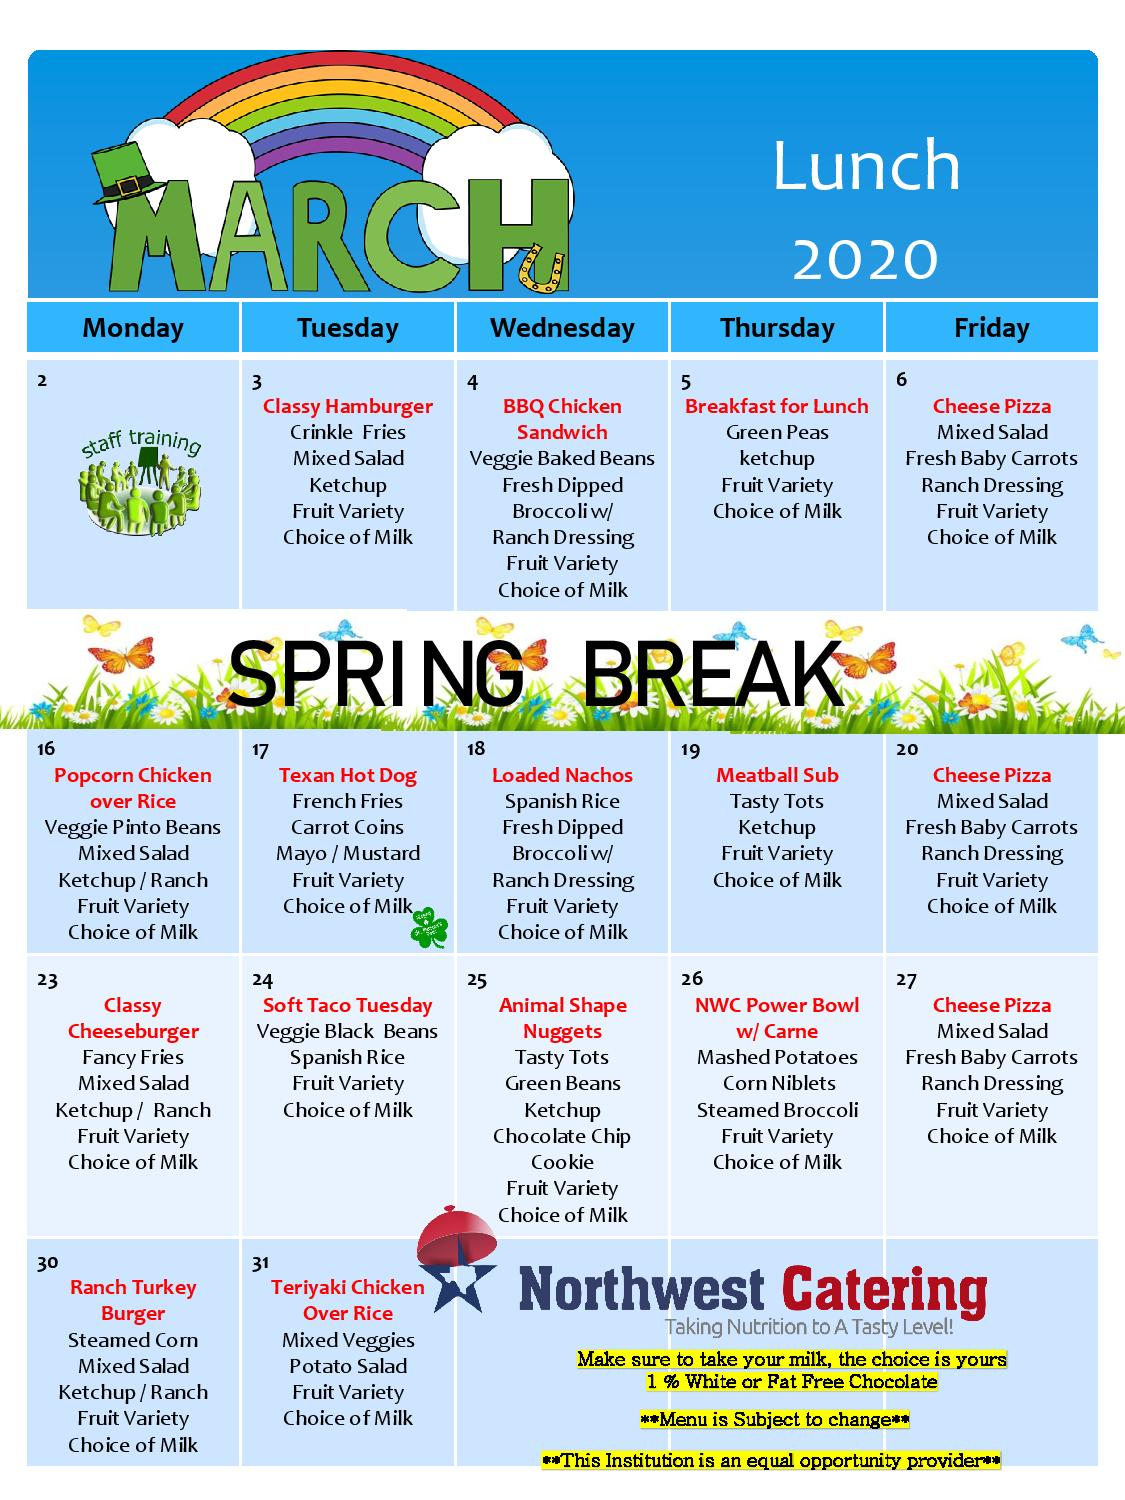 March Lunch Menu 2020